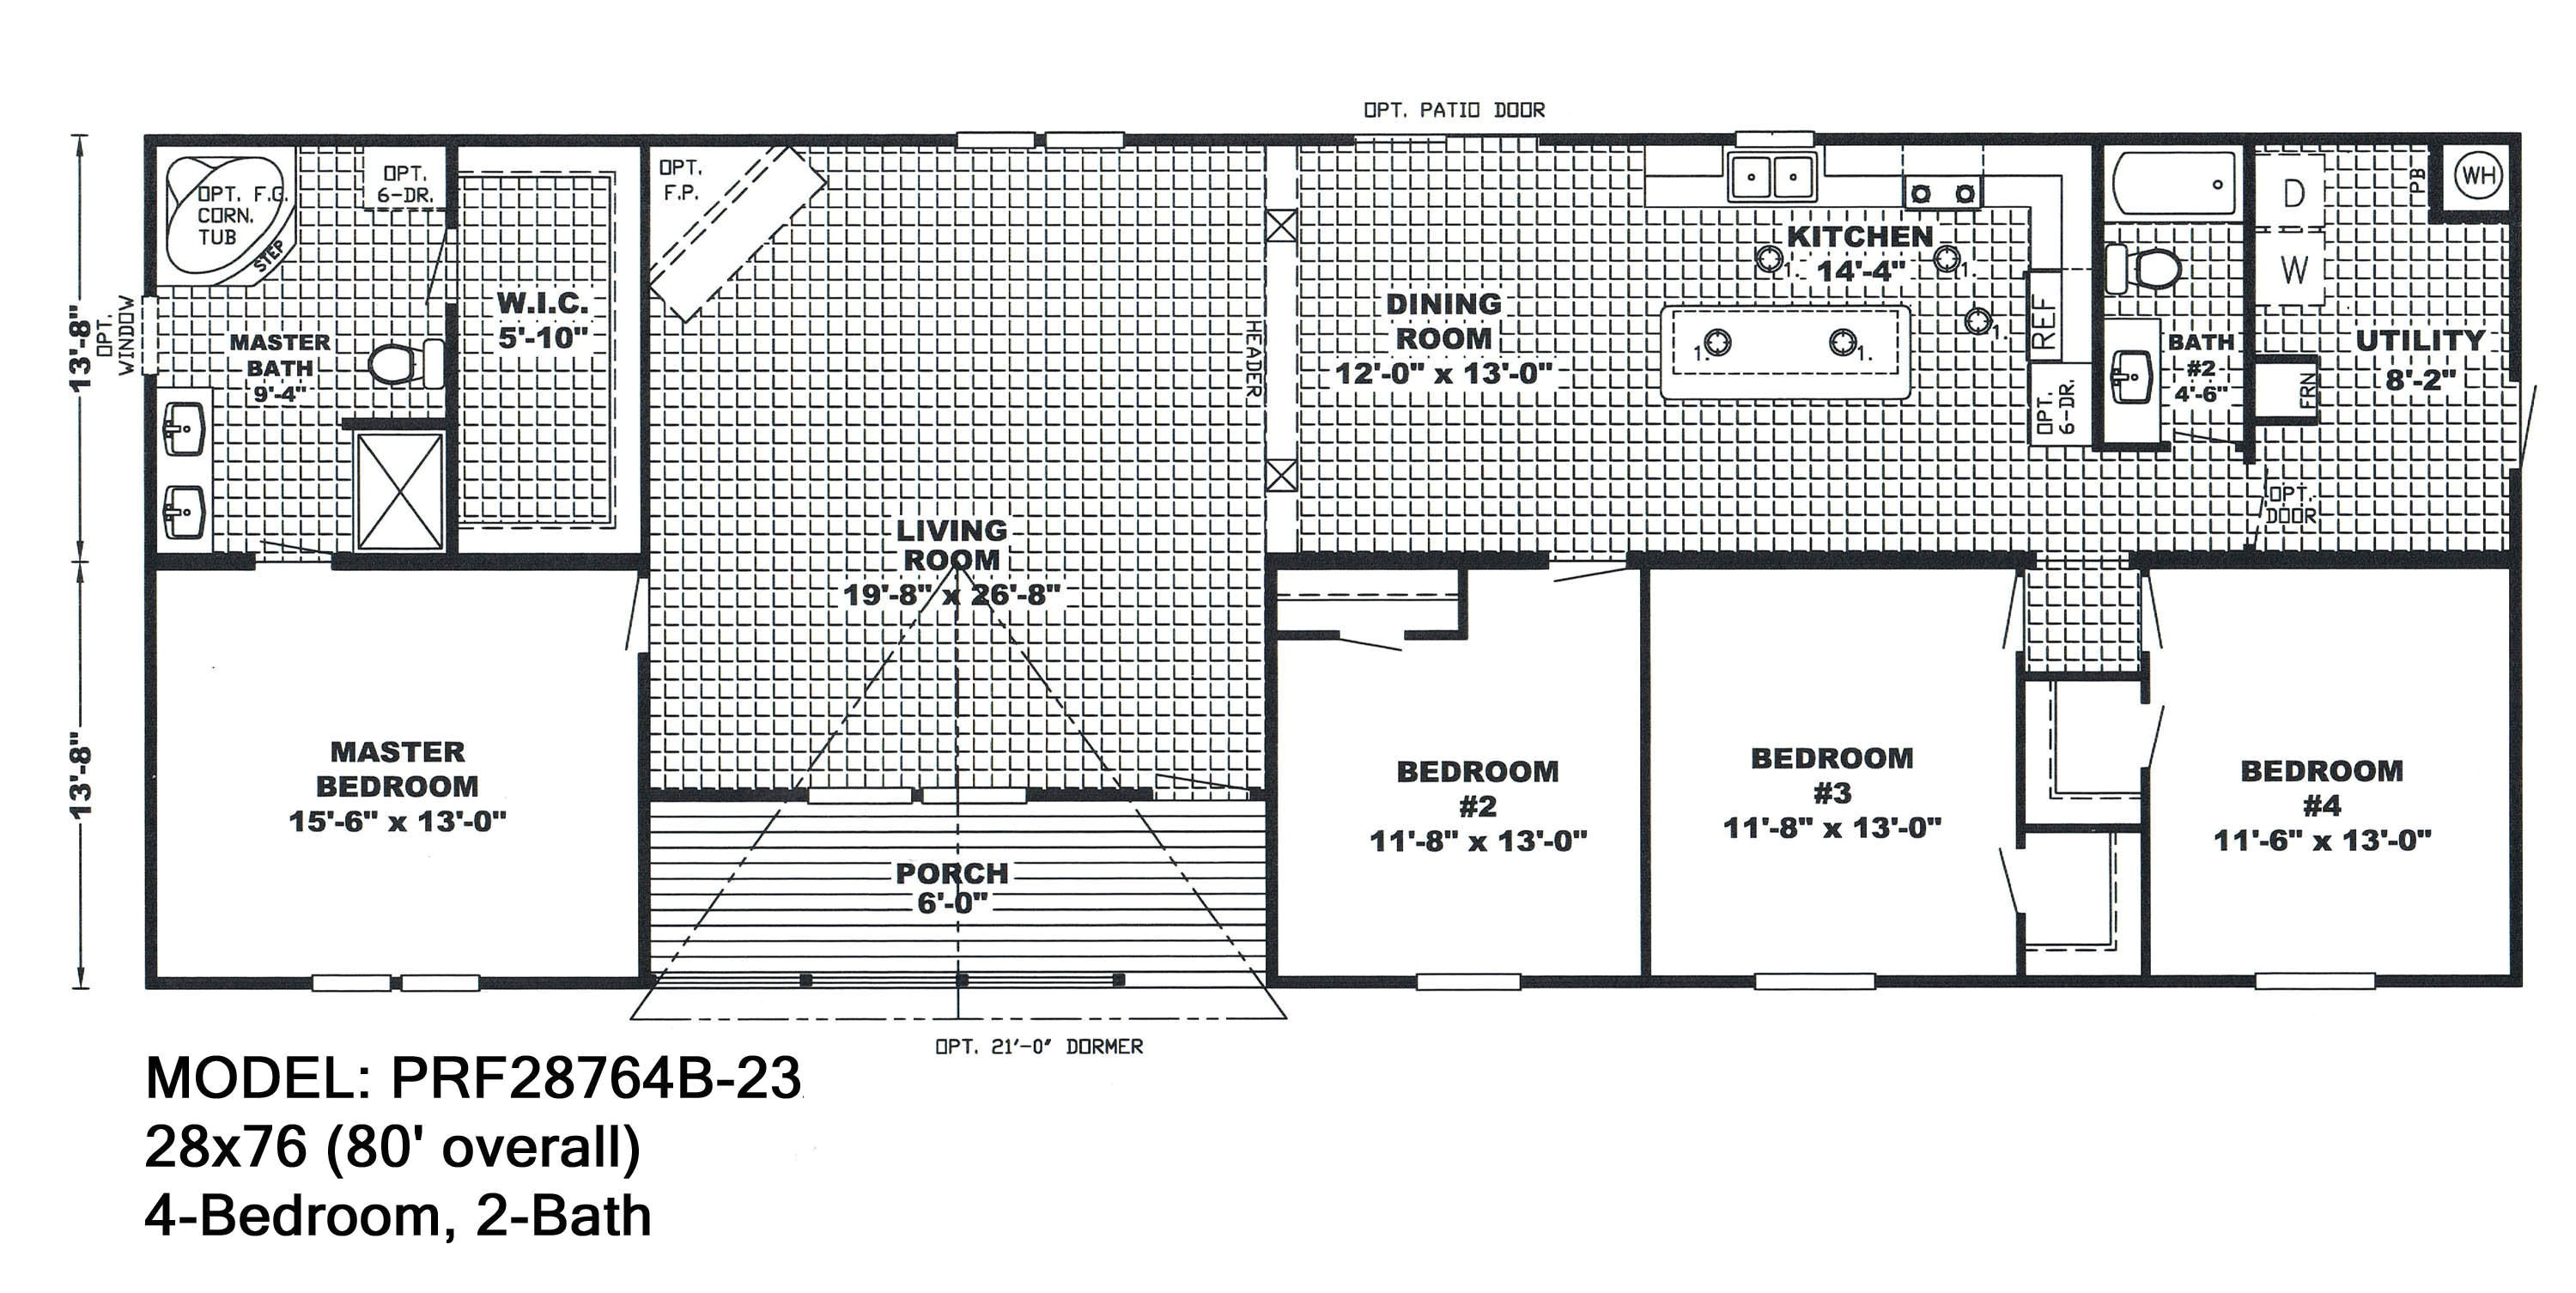 4 bedroom double wide mobile home floor plans fresh mobile homes one bedroom 4 modular floor plans single wide home